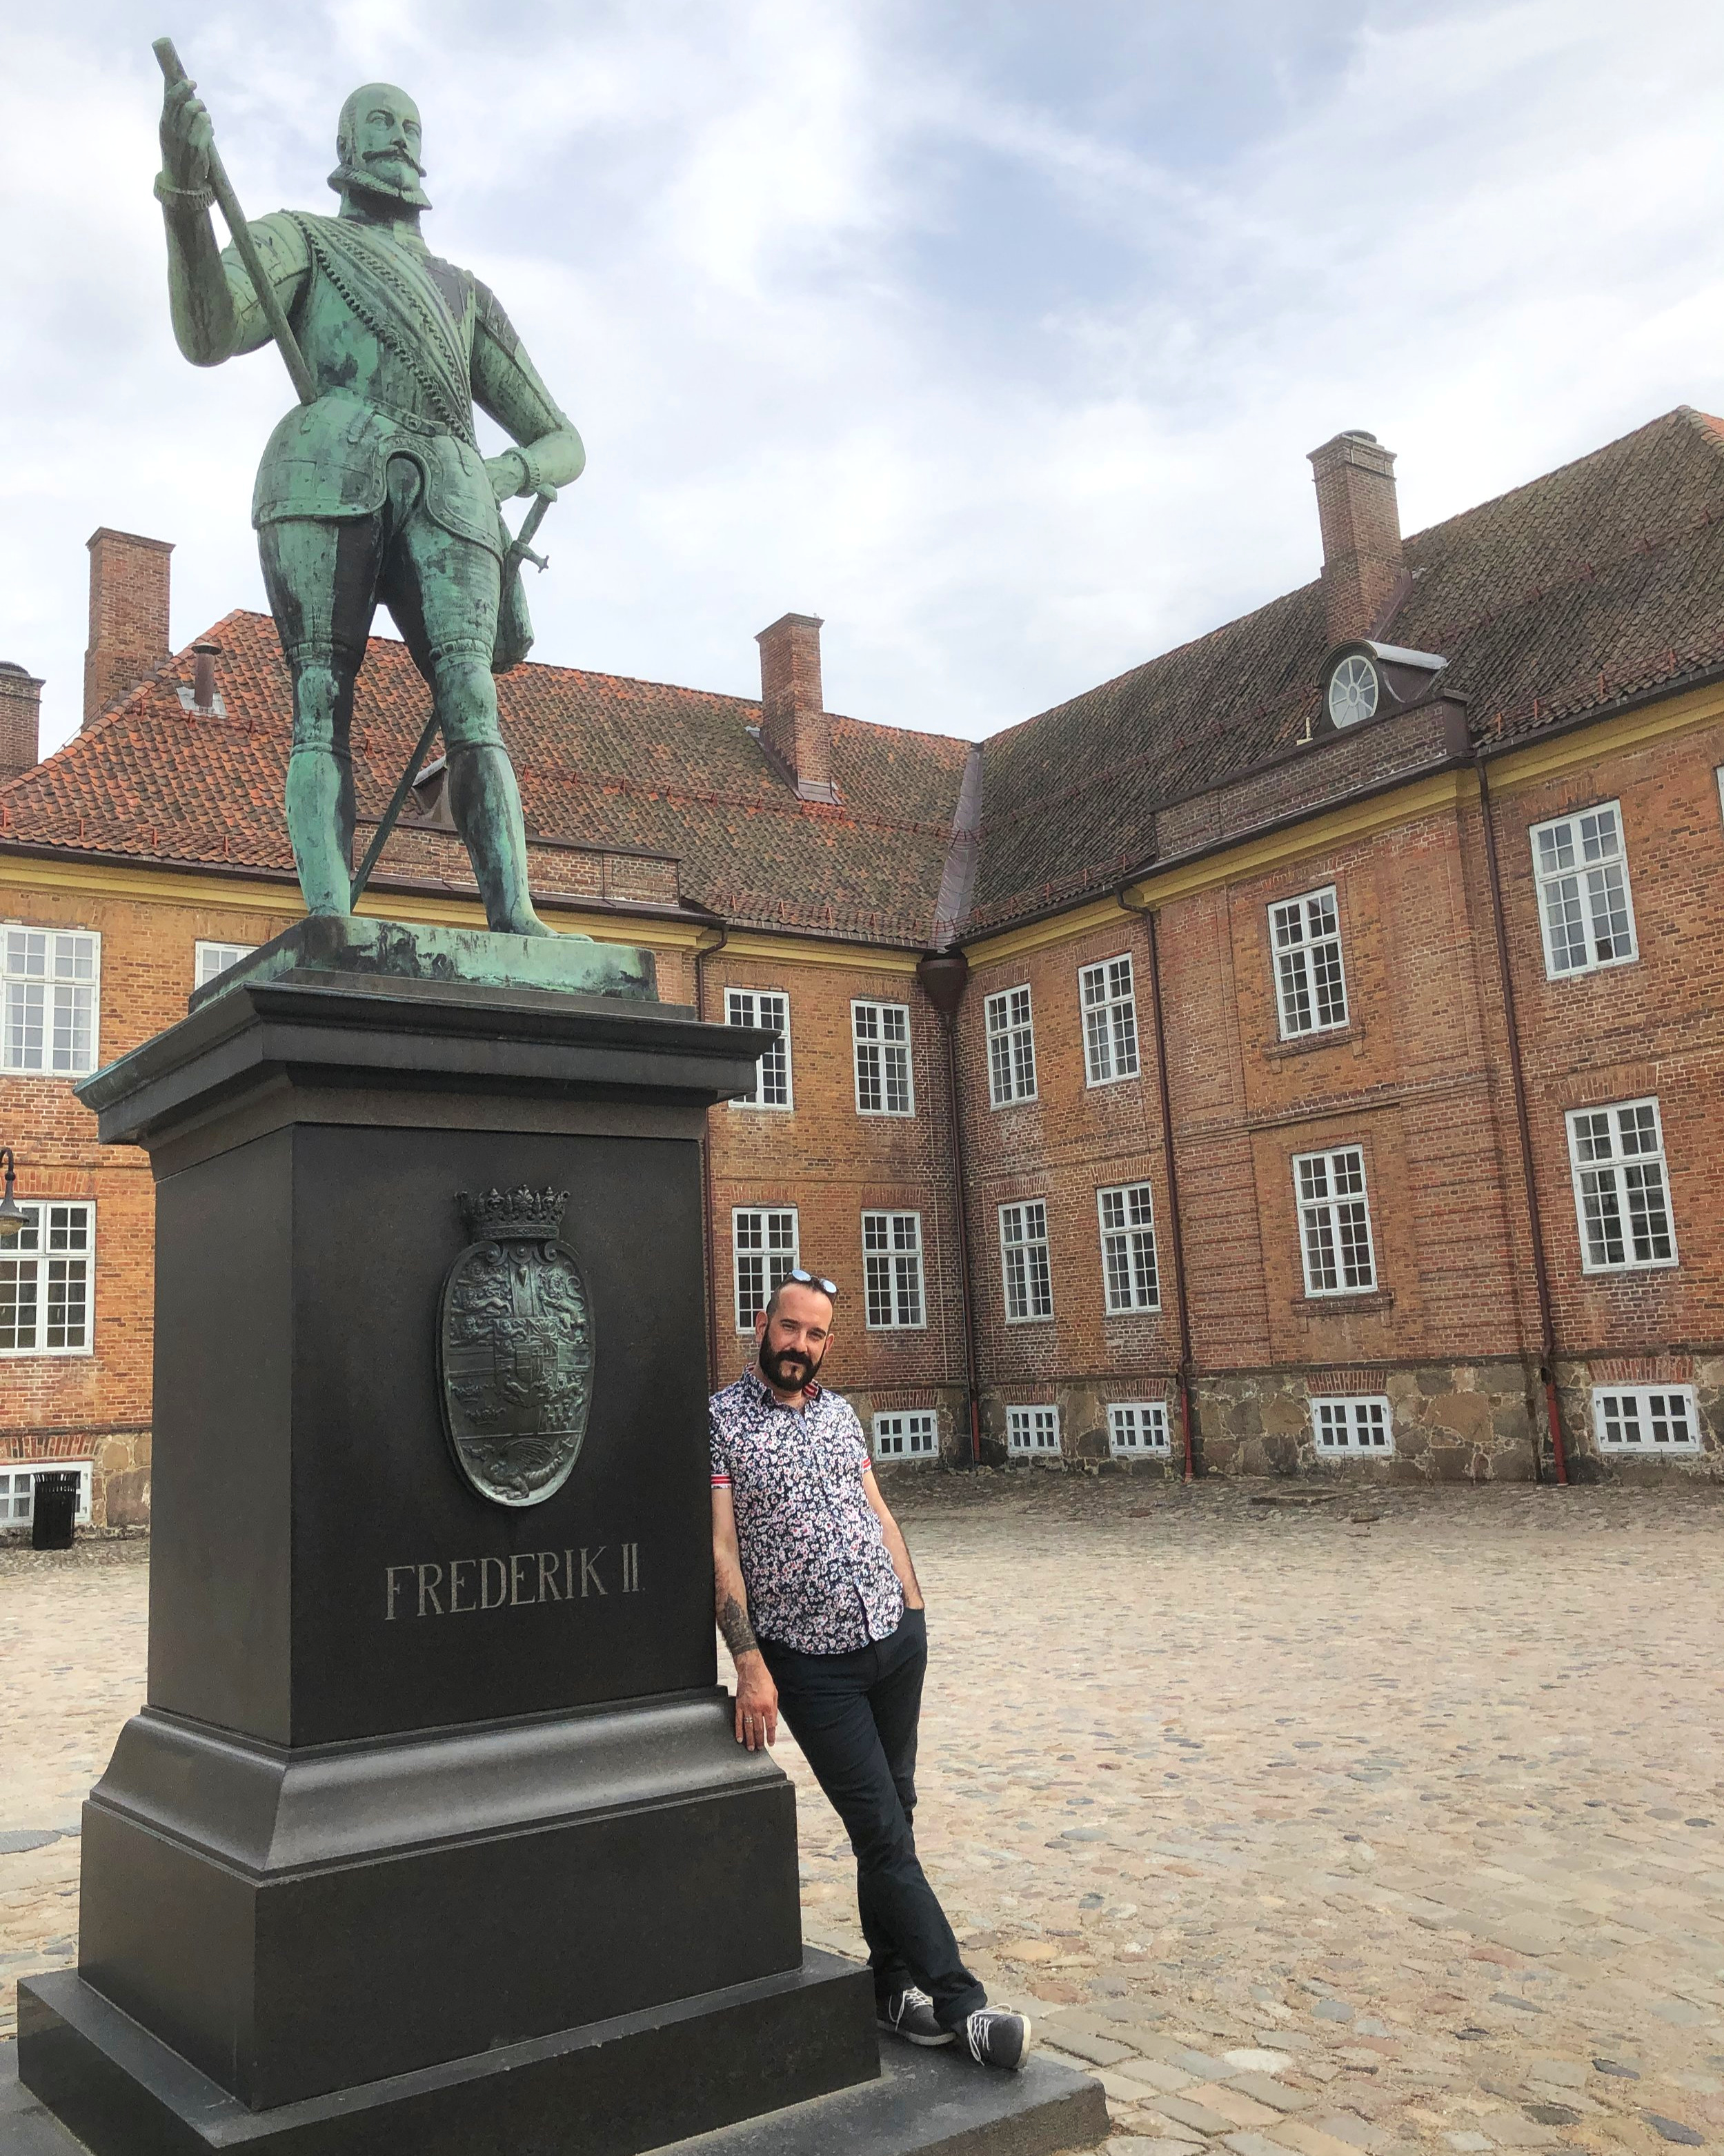 Mathew with a statue of Frederik II at Fredrikstad, Norway.